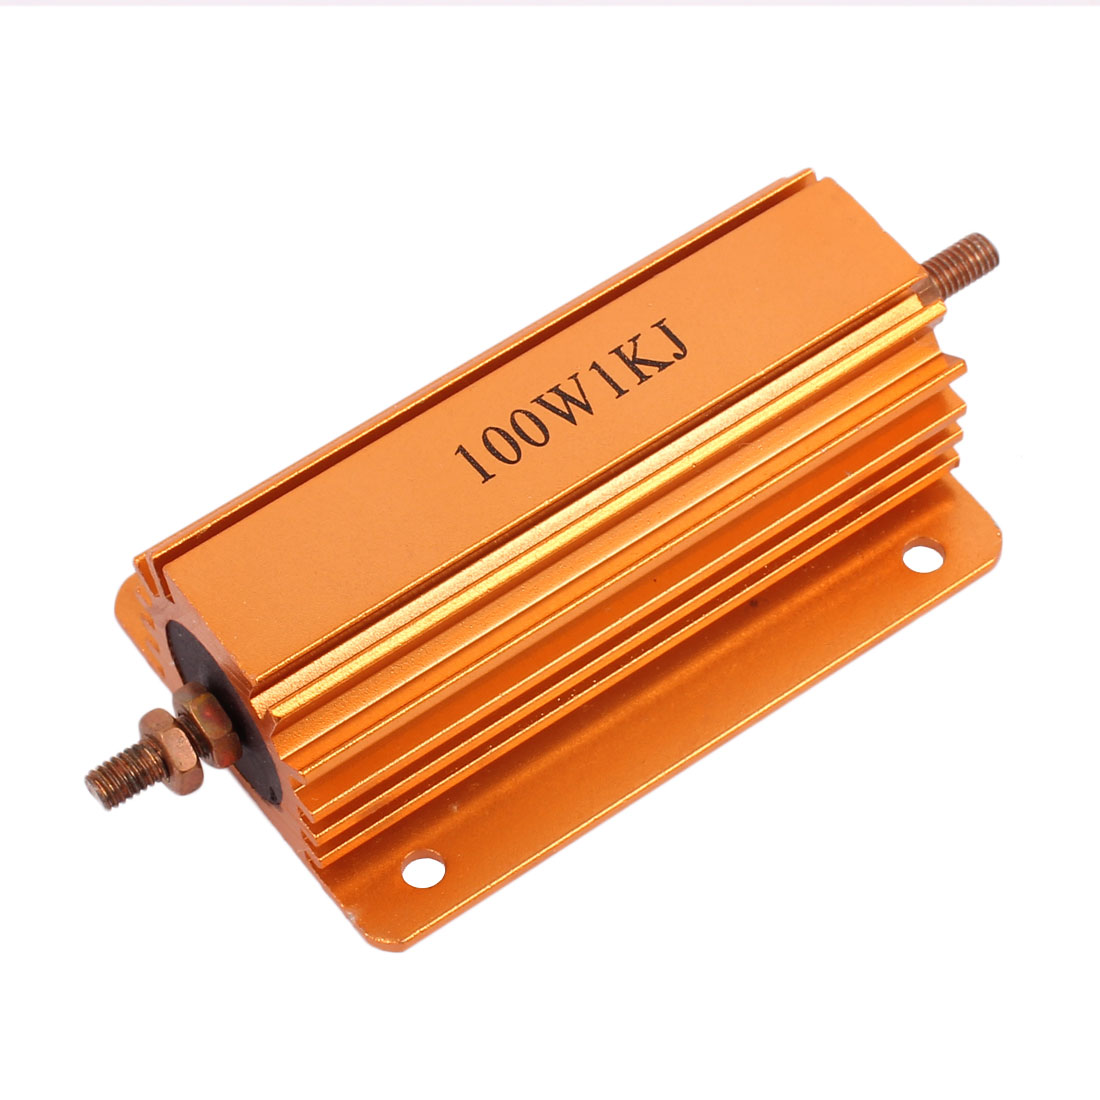 100W 1000 Ohm Gold Tone Chassis Mounted Aluminum Shell Clad Resistor